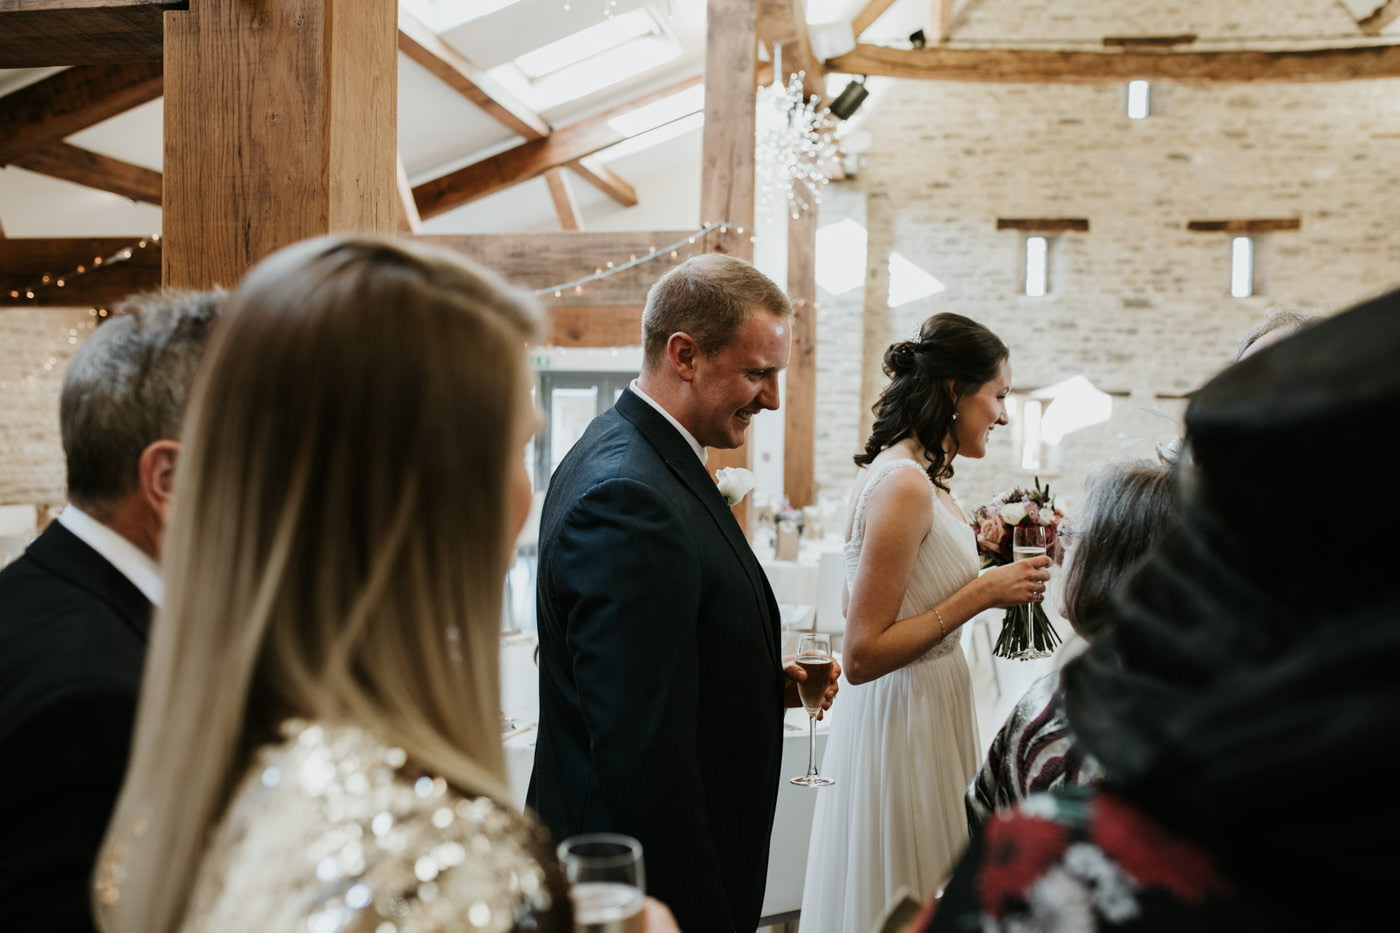 Ruth and Ben, Winkworth Farm, Wiltshire 18